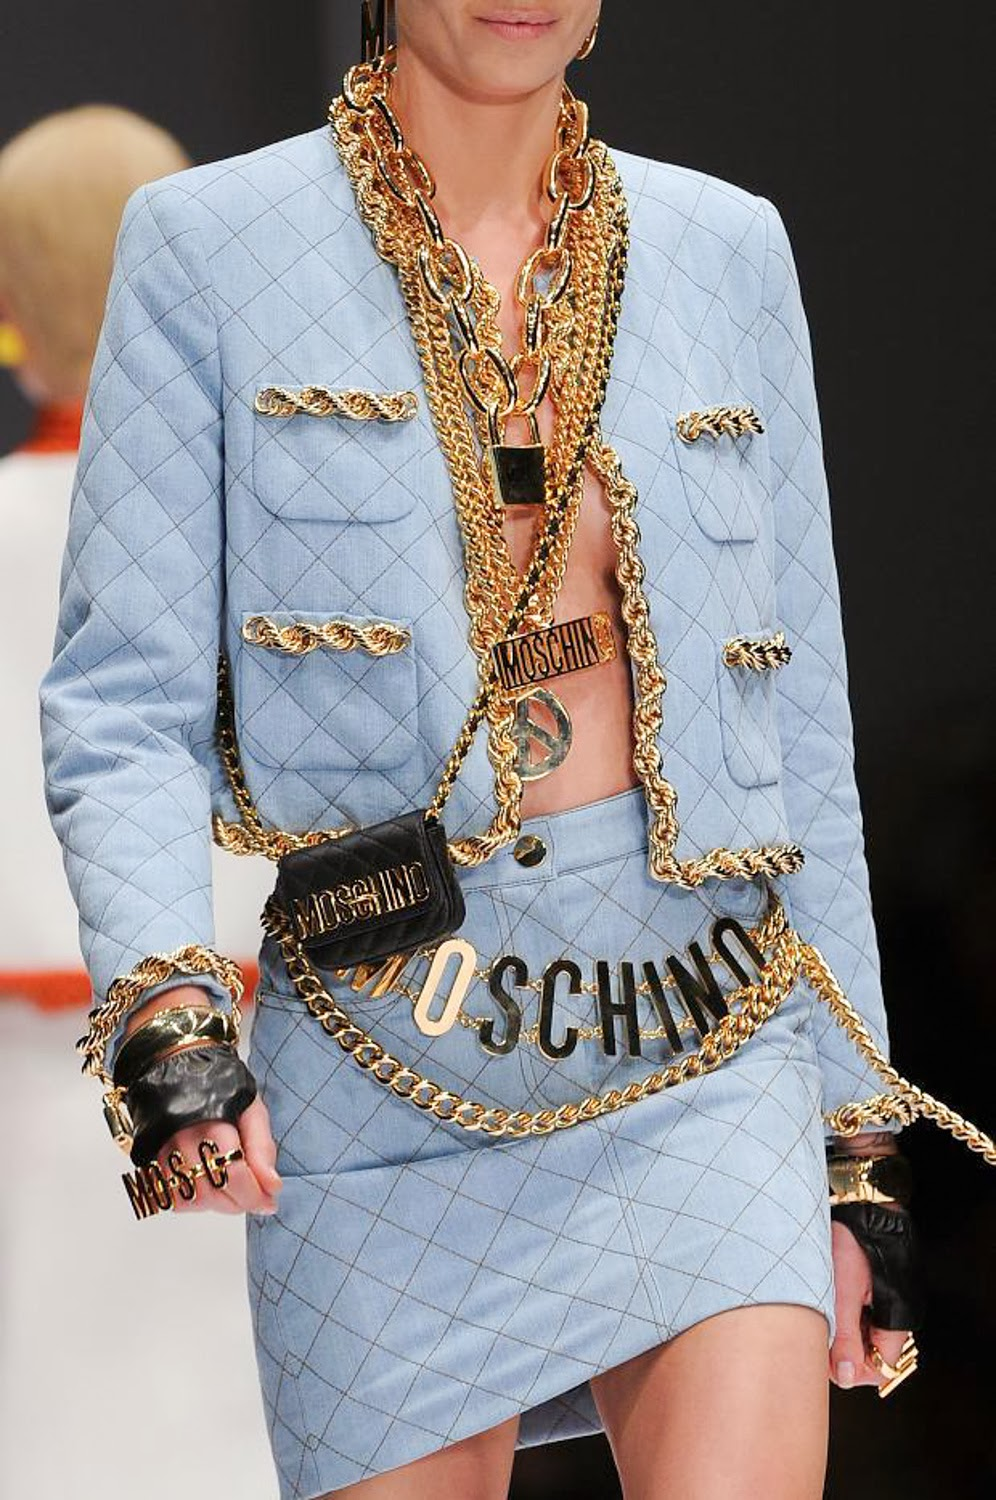 Moschino Autumn Fall Winter 2014